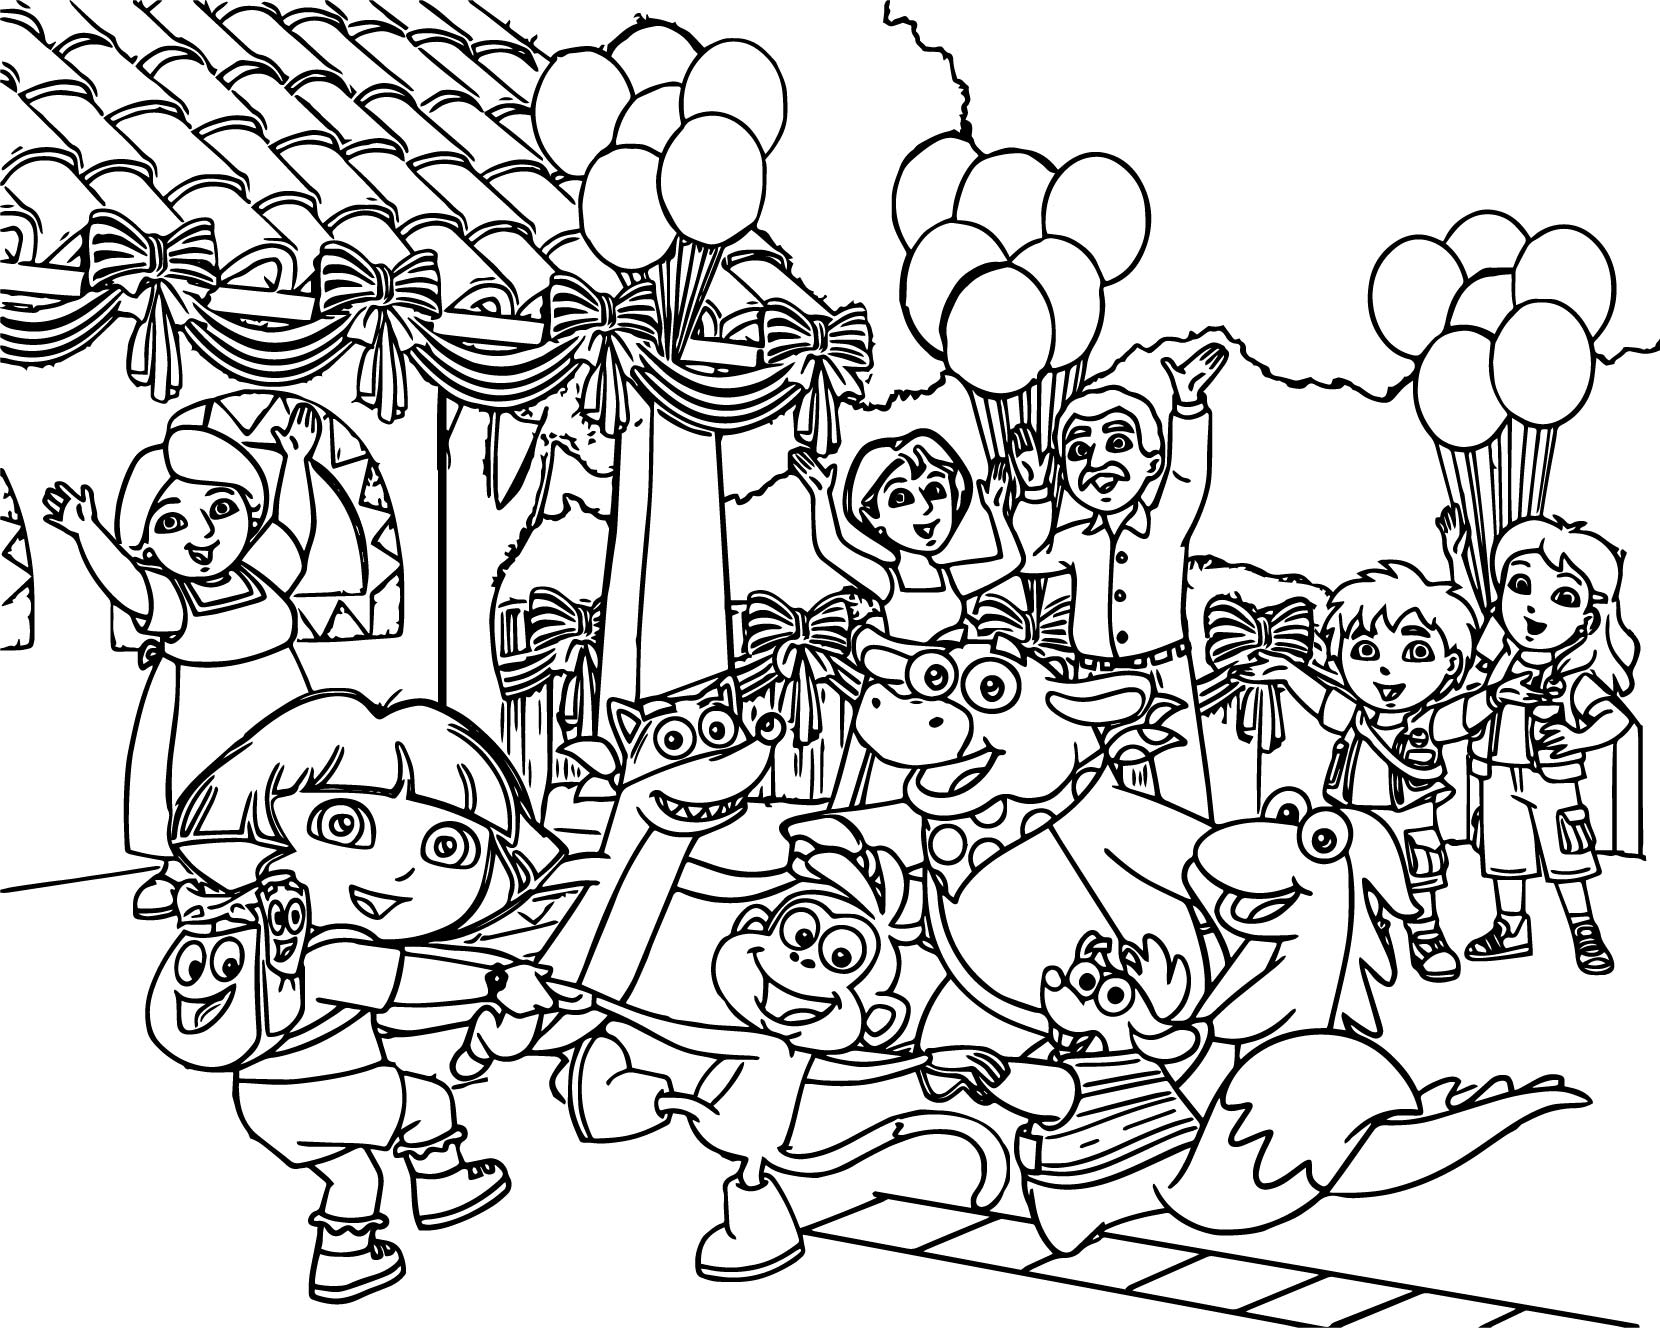 24 Dora the Explorer Coloring Pages Collections | FREE COLORING ...